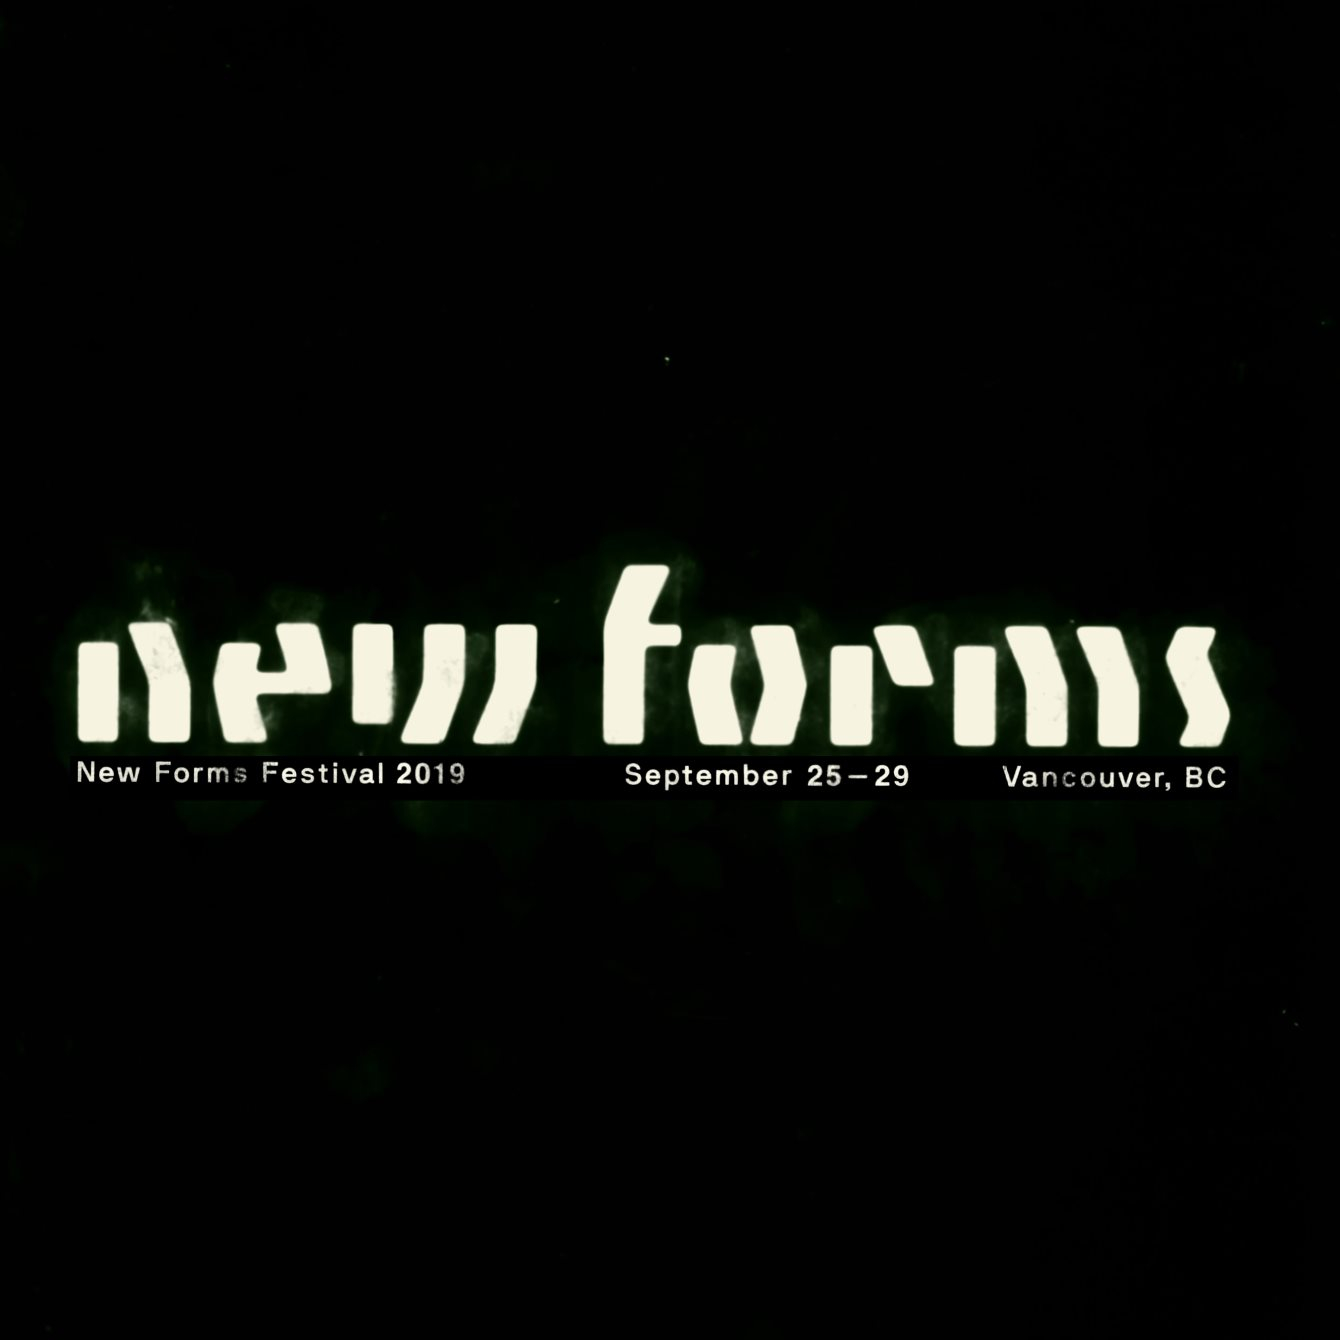 New Forms Festival 2019 - Flyer front